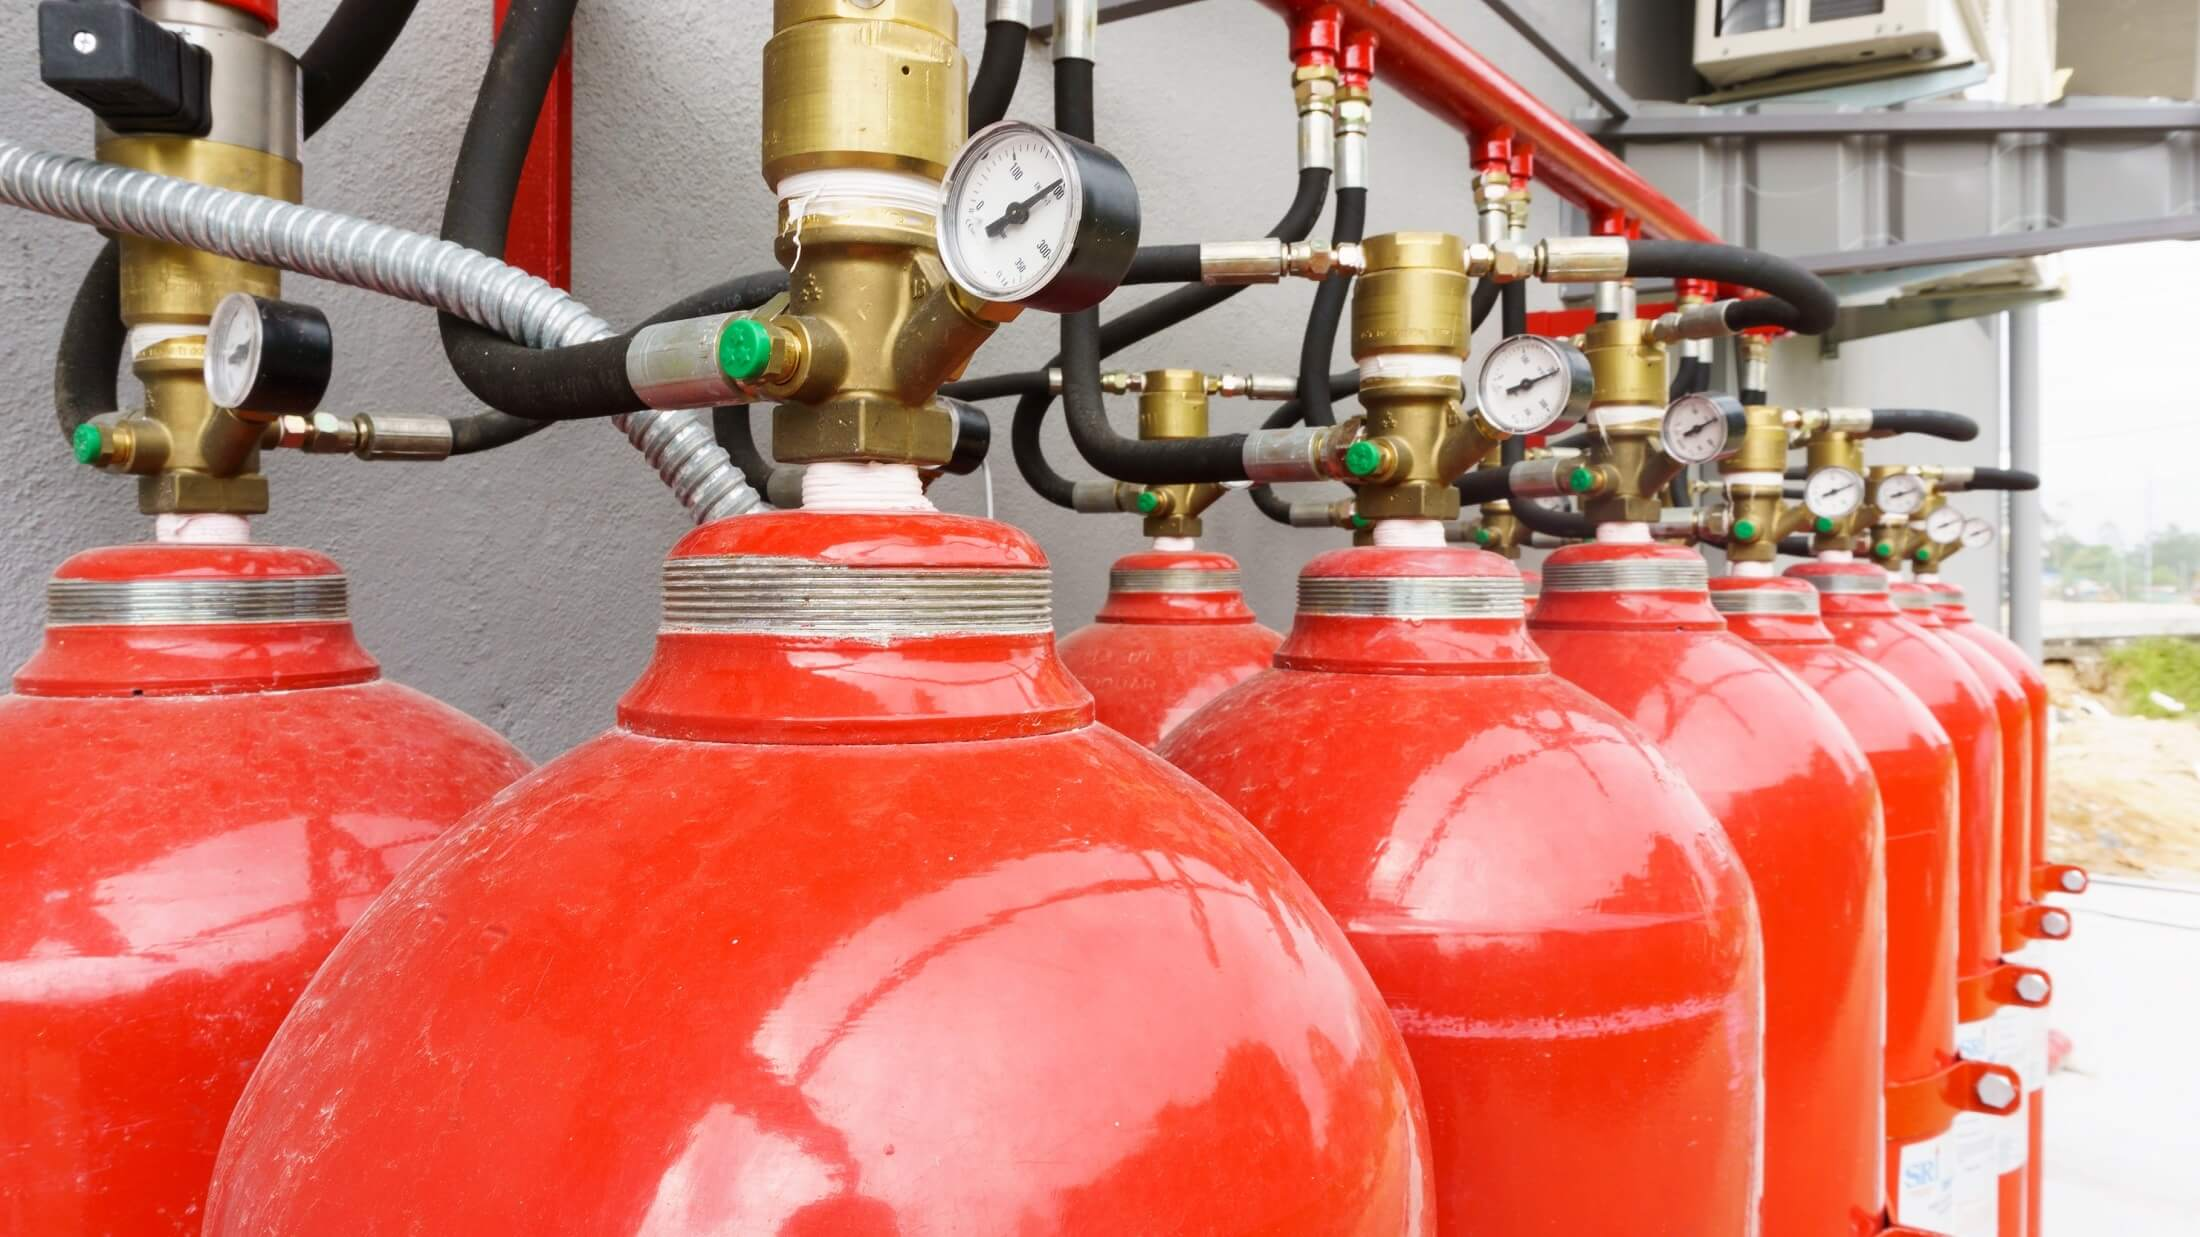 Why do acetylene cylinders need to be stored upright?